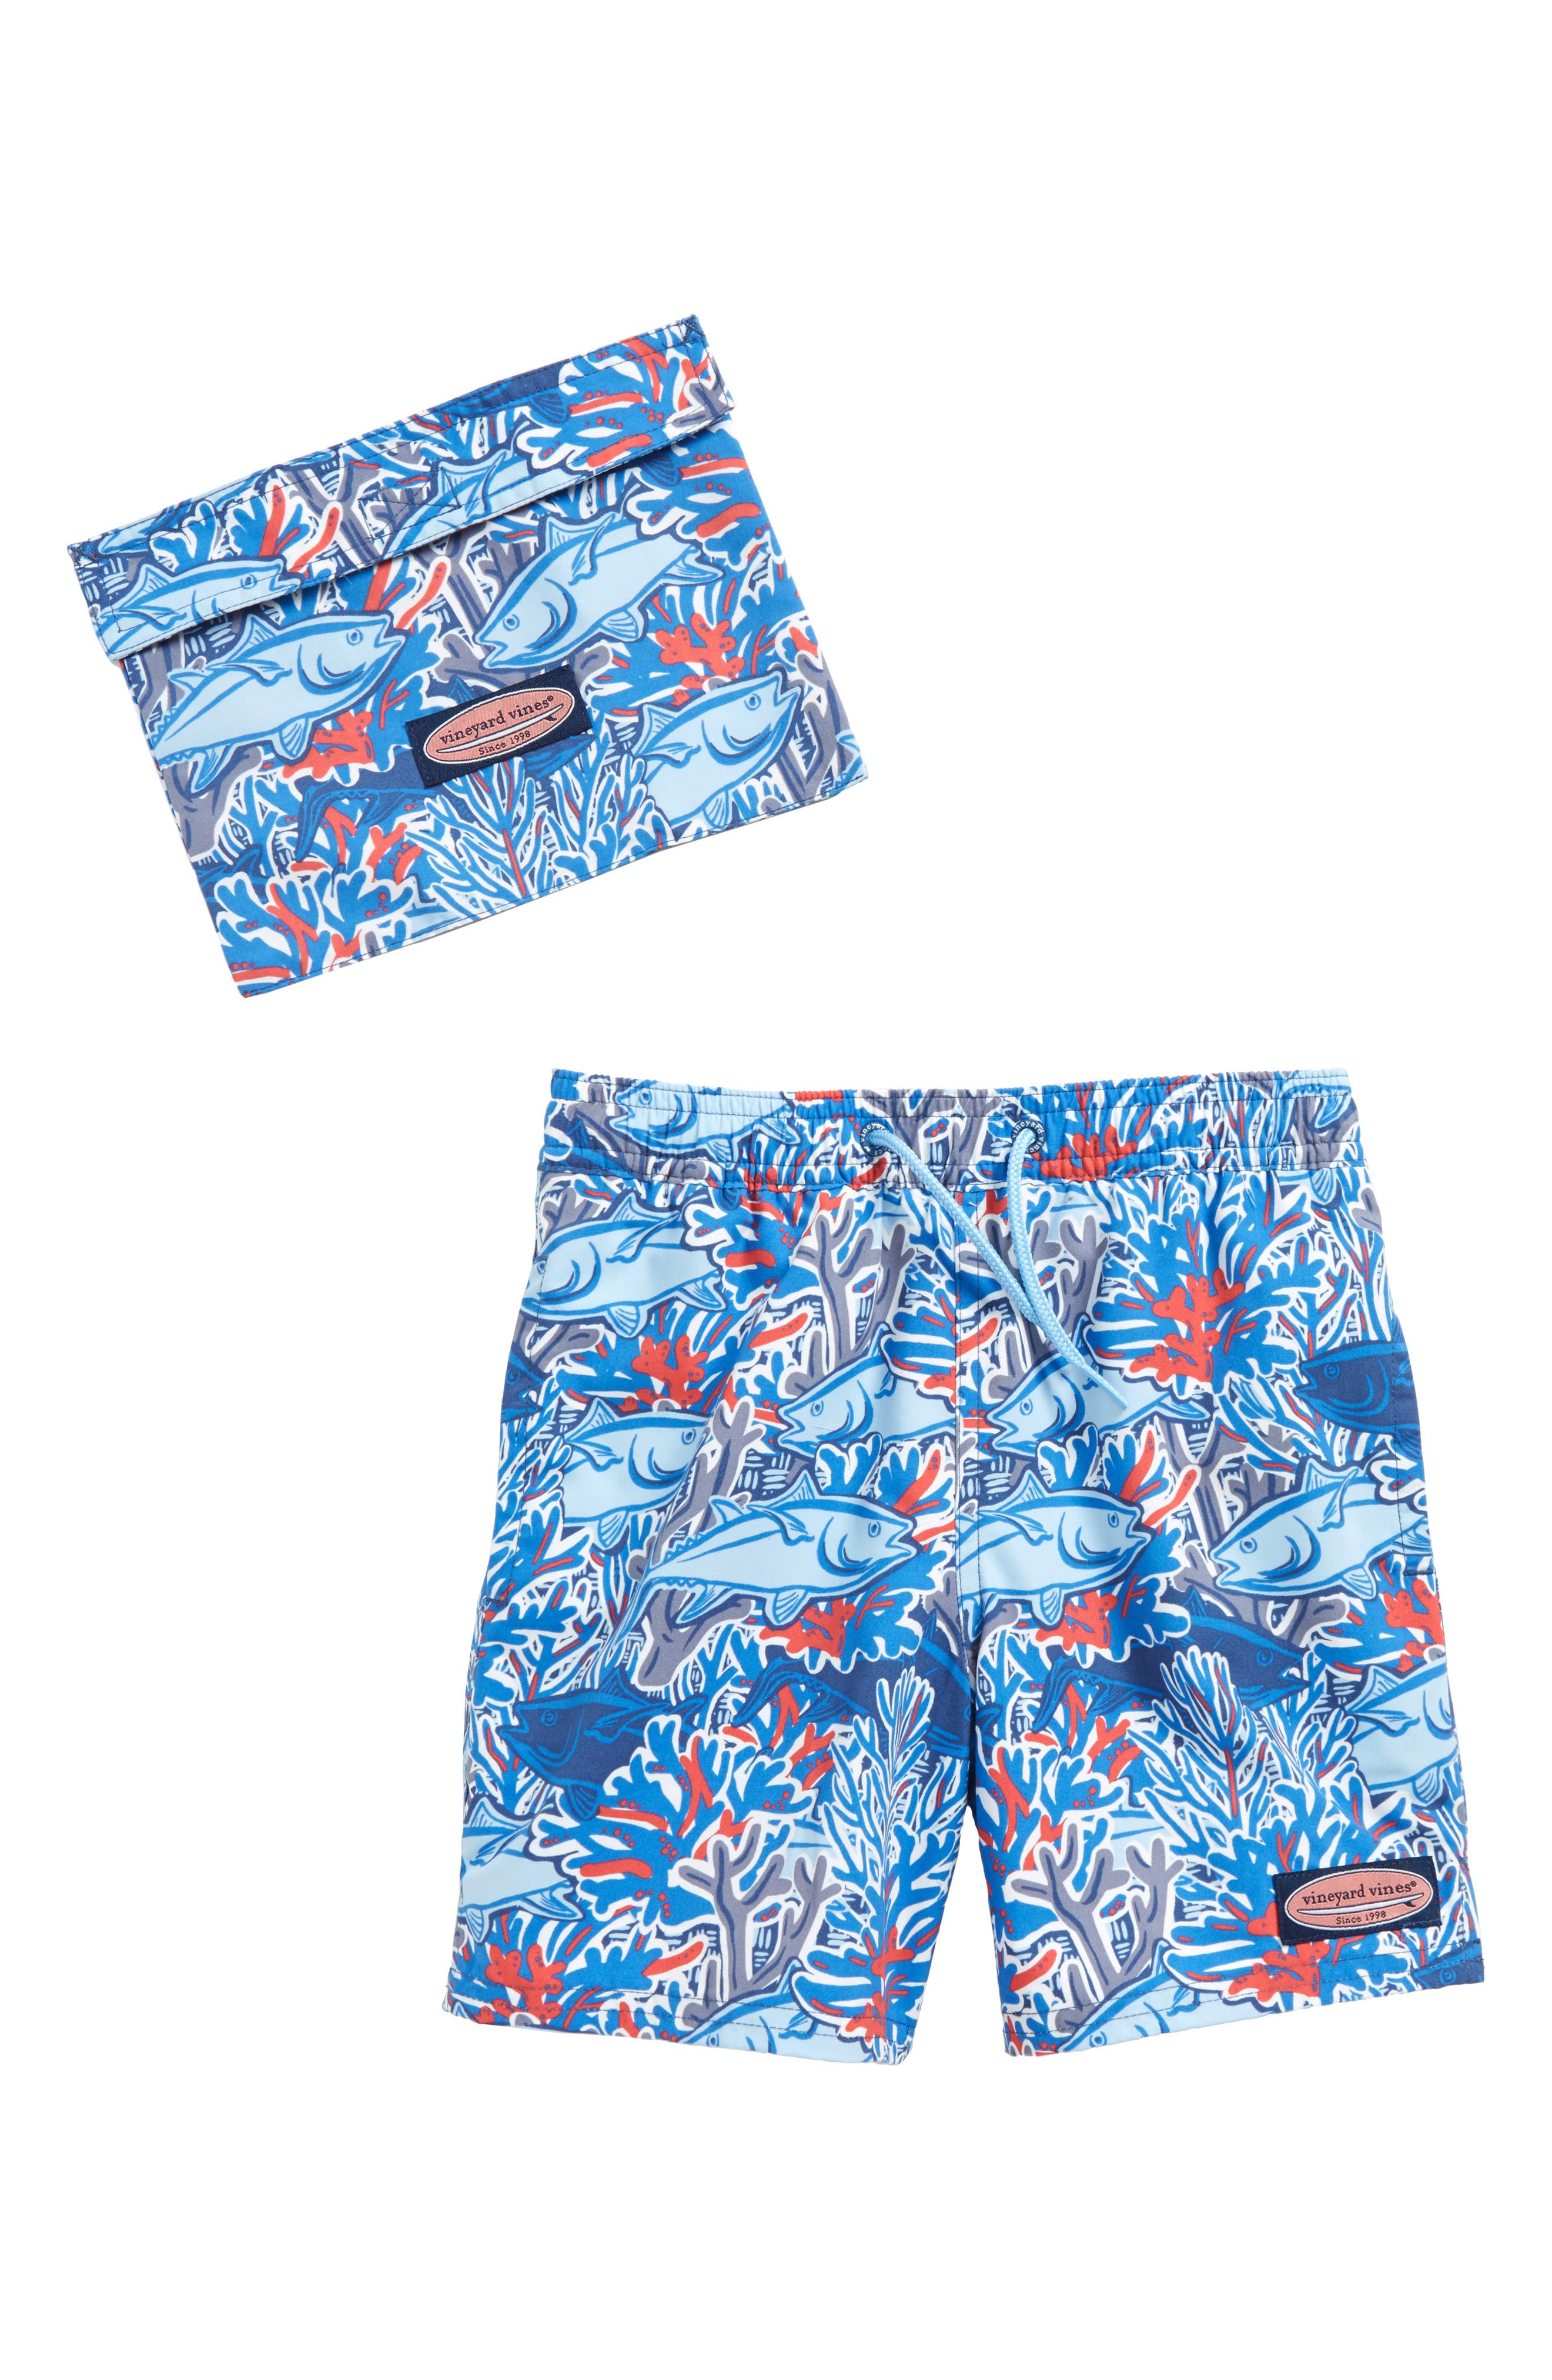 Chappy Tuna in Coral Swim Trunks,                             Main thumbnail 1, color,                             Moonshine